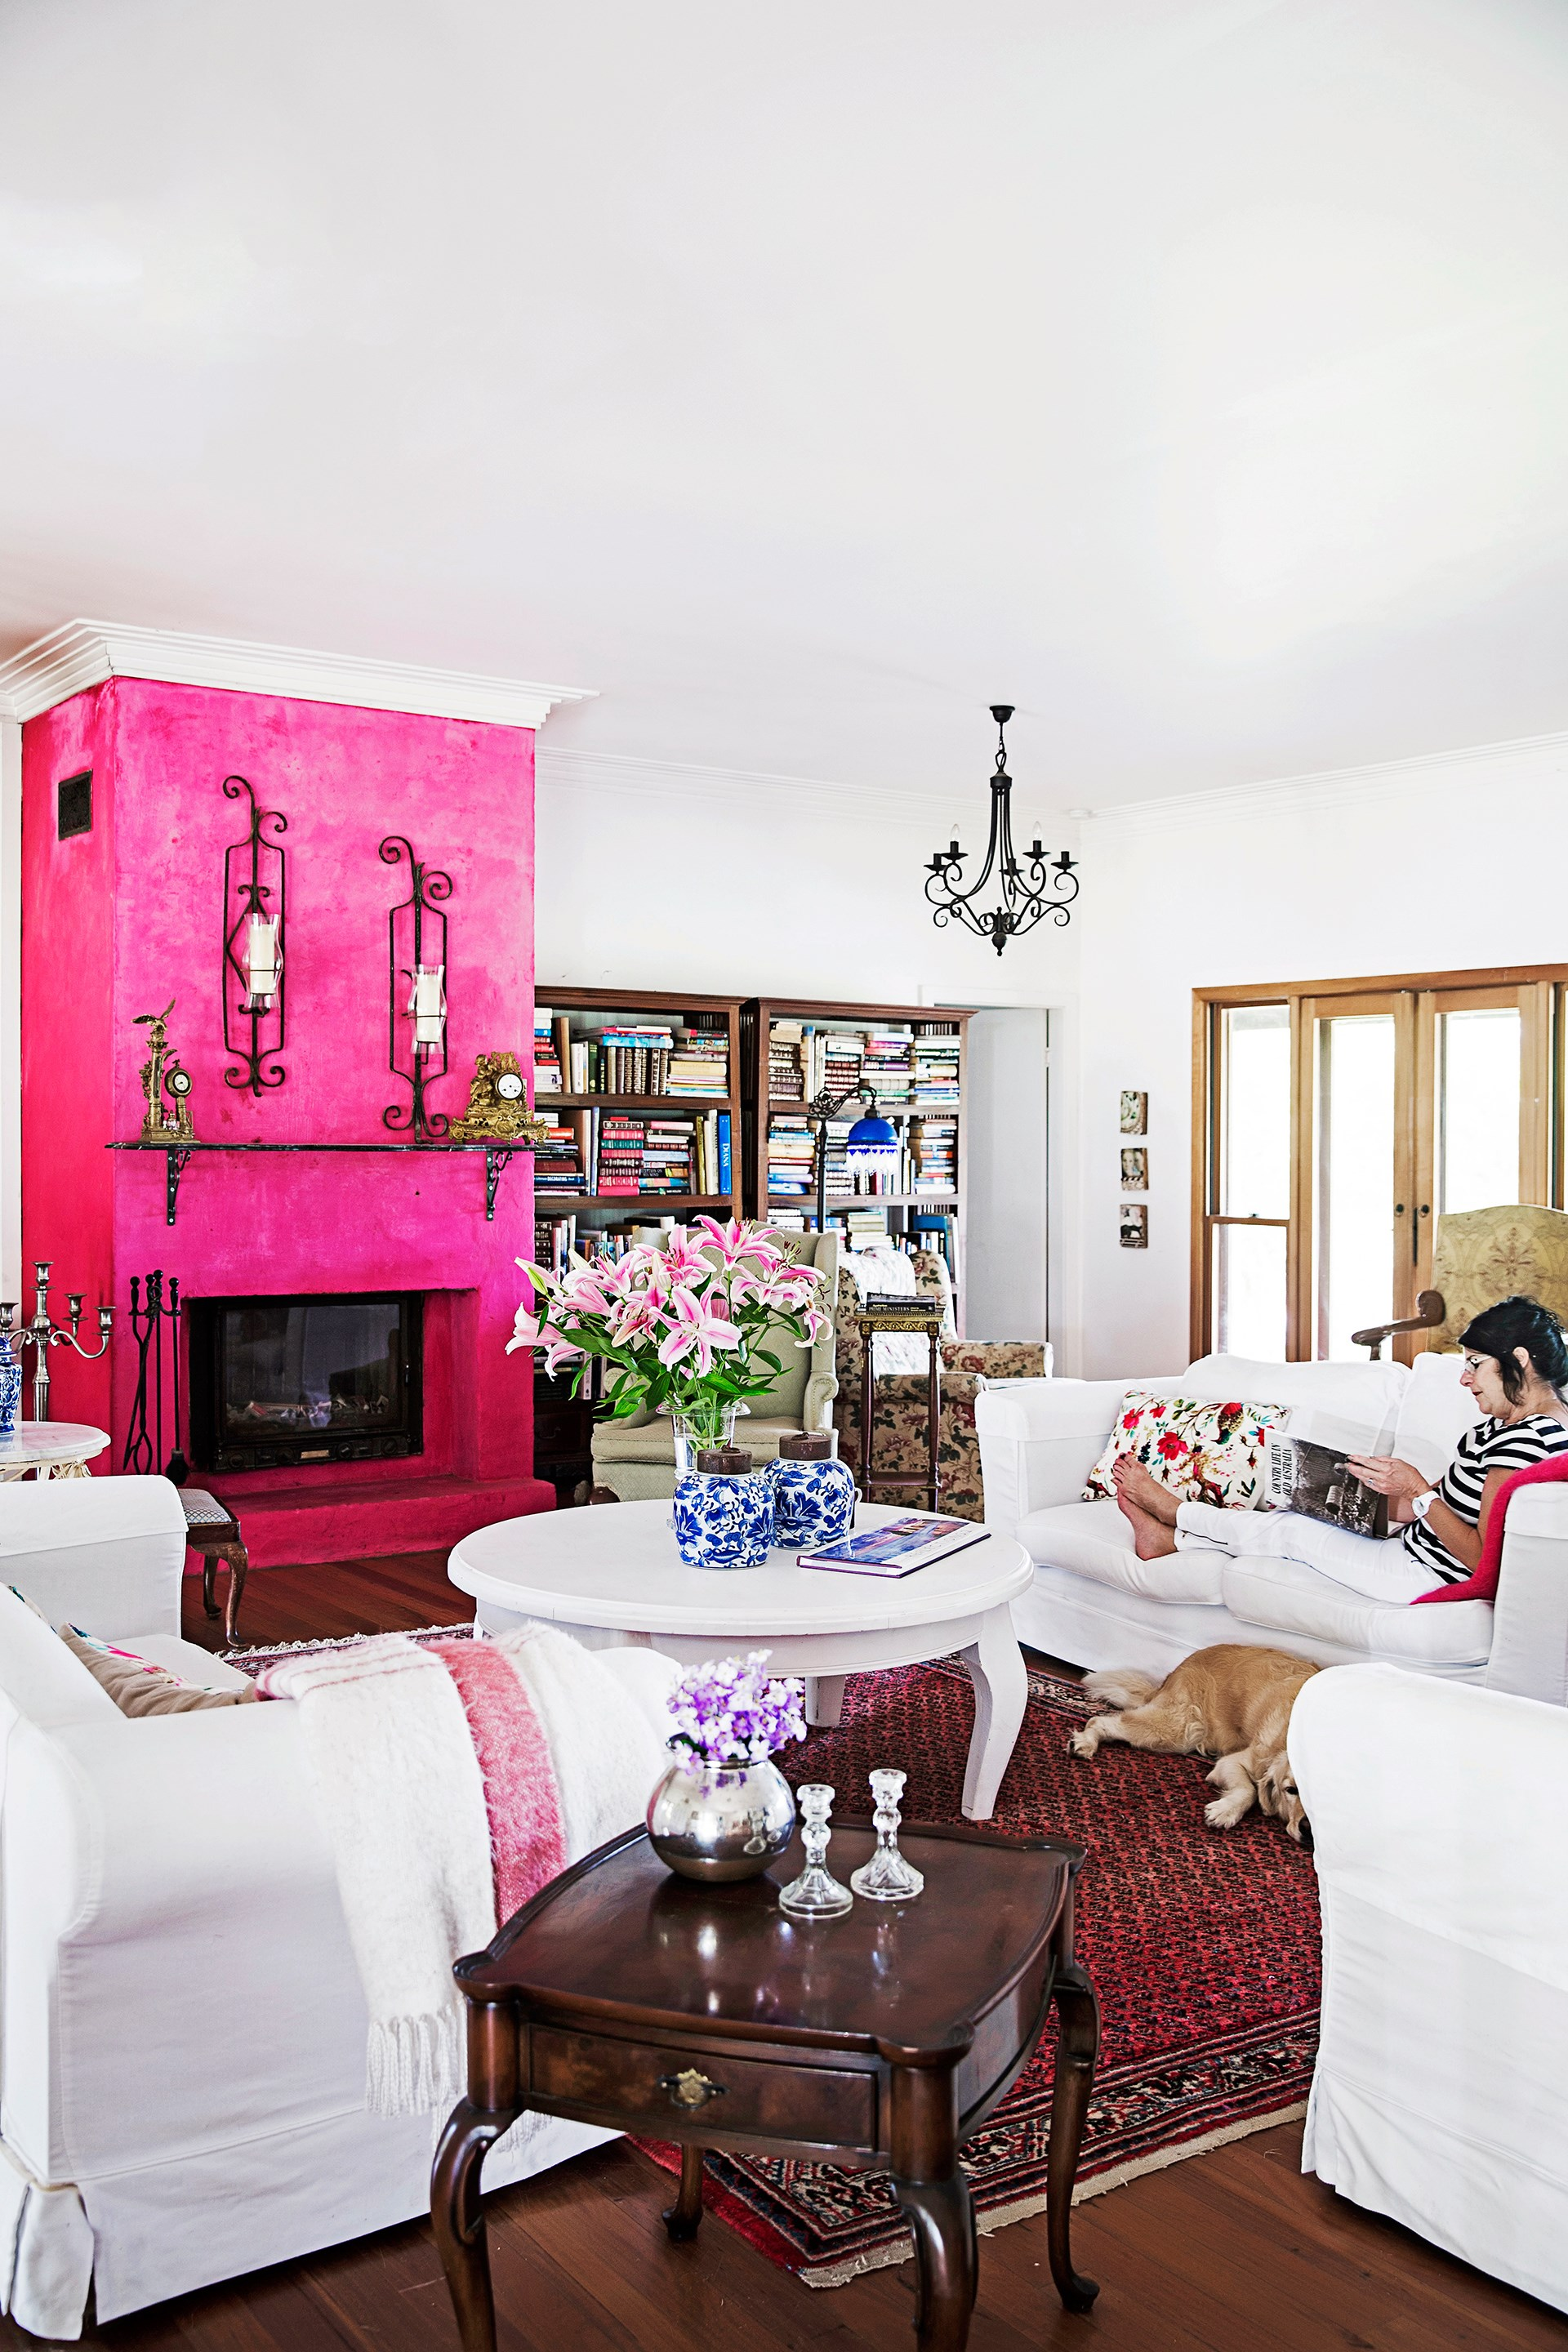 "The bright pink feature wall in [Lorraine's French provincial-style country home](http://www.homestolove.com.au/gallery-lorraines-french-provincial-style-country-home-2281|target=""_blank"") adds a bold feminine touch. Photo: James Henry / *homes+*"